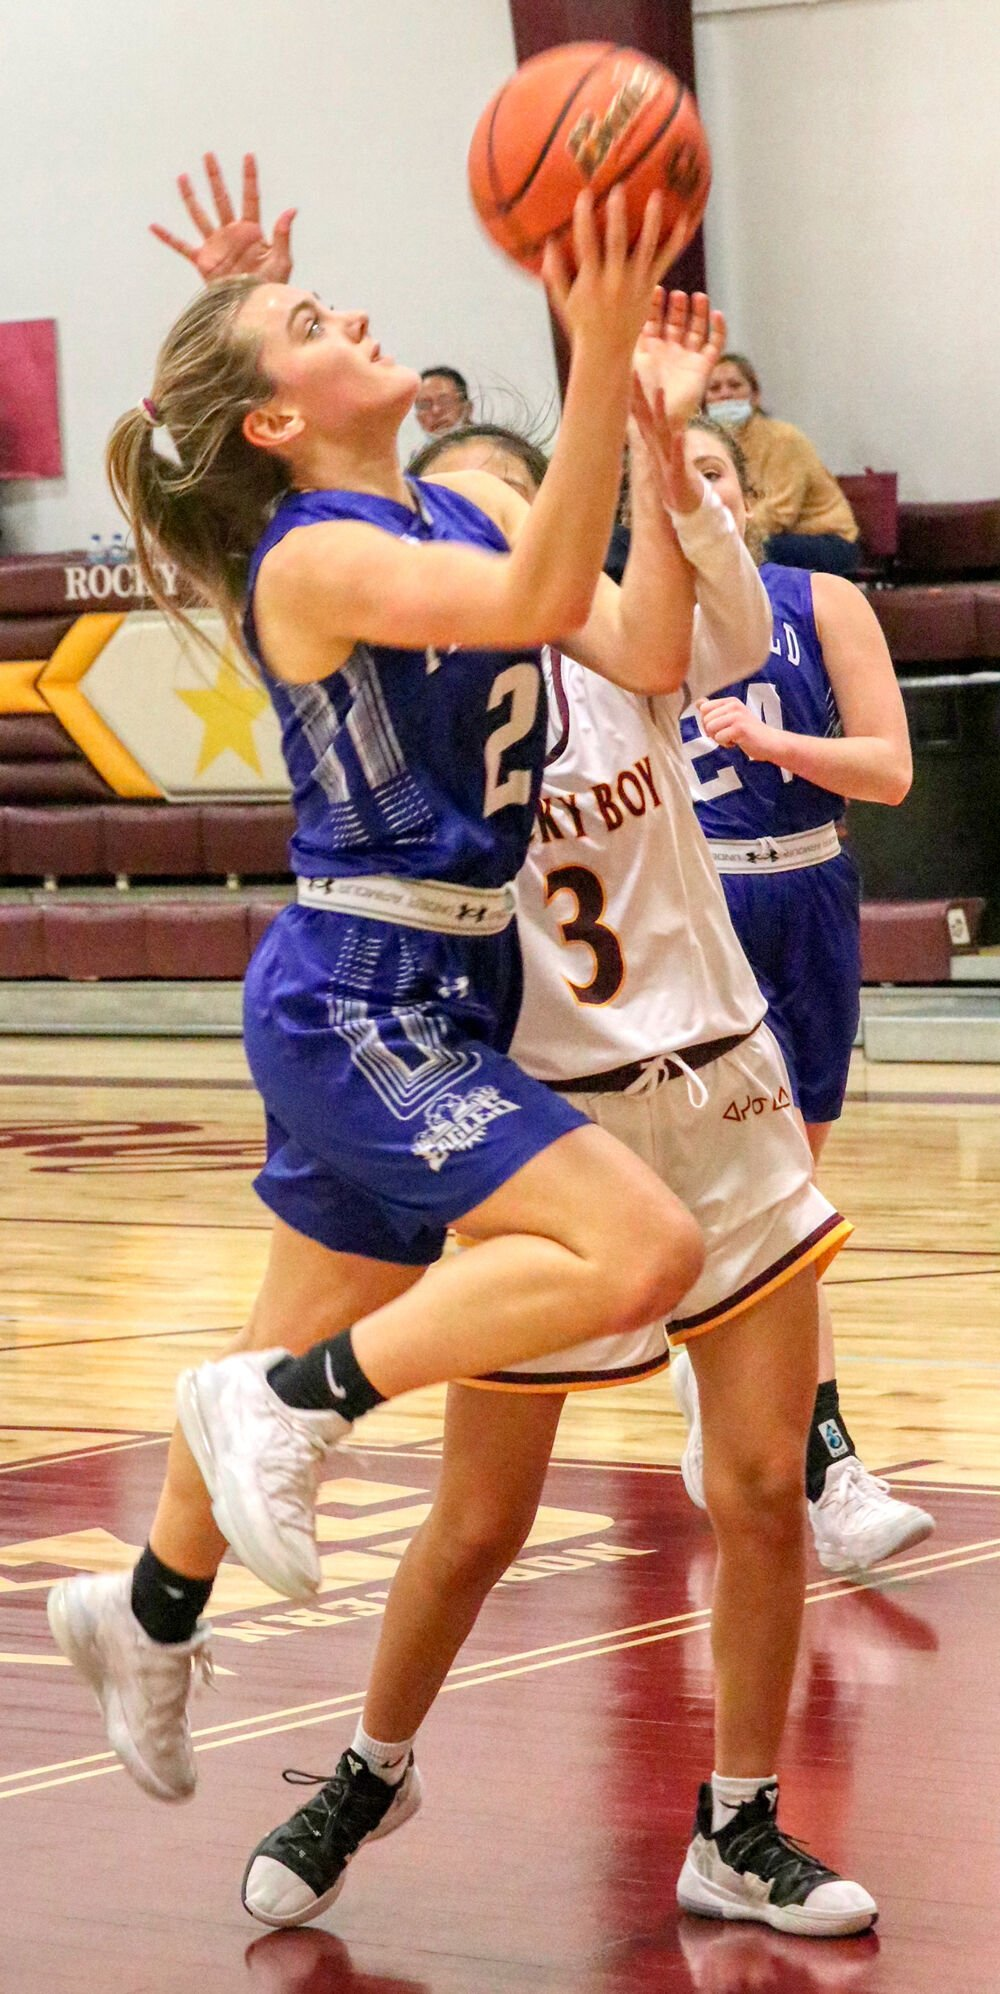 1000-HDR-#2-Alexa-Johnson-lays-it-up-for-the-lady-Eagles-against-Rocky-Boy.-IMG_7194.jpg